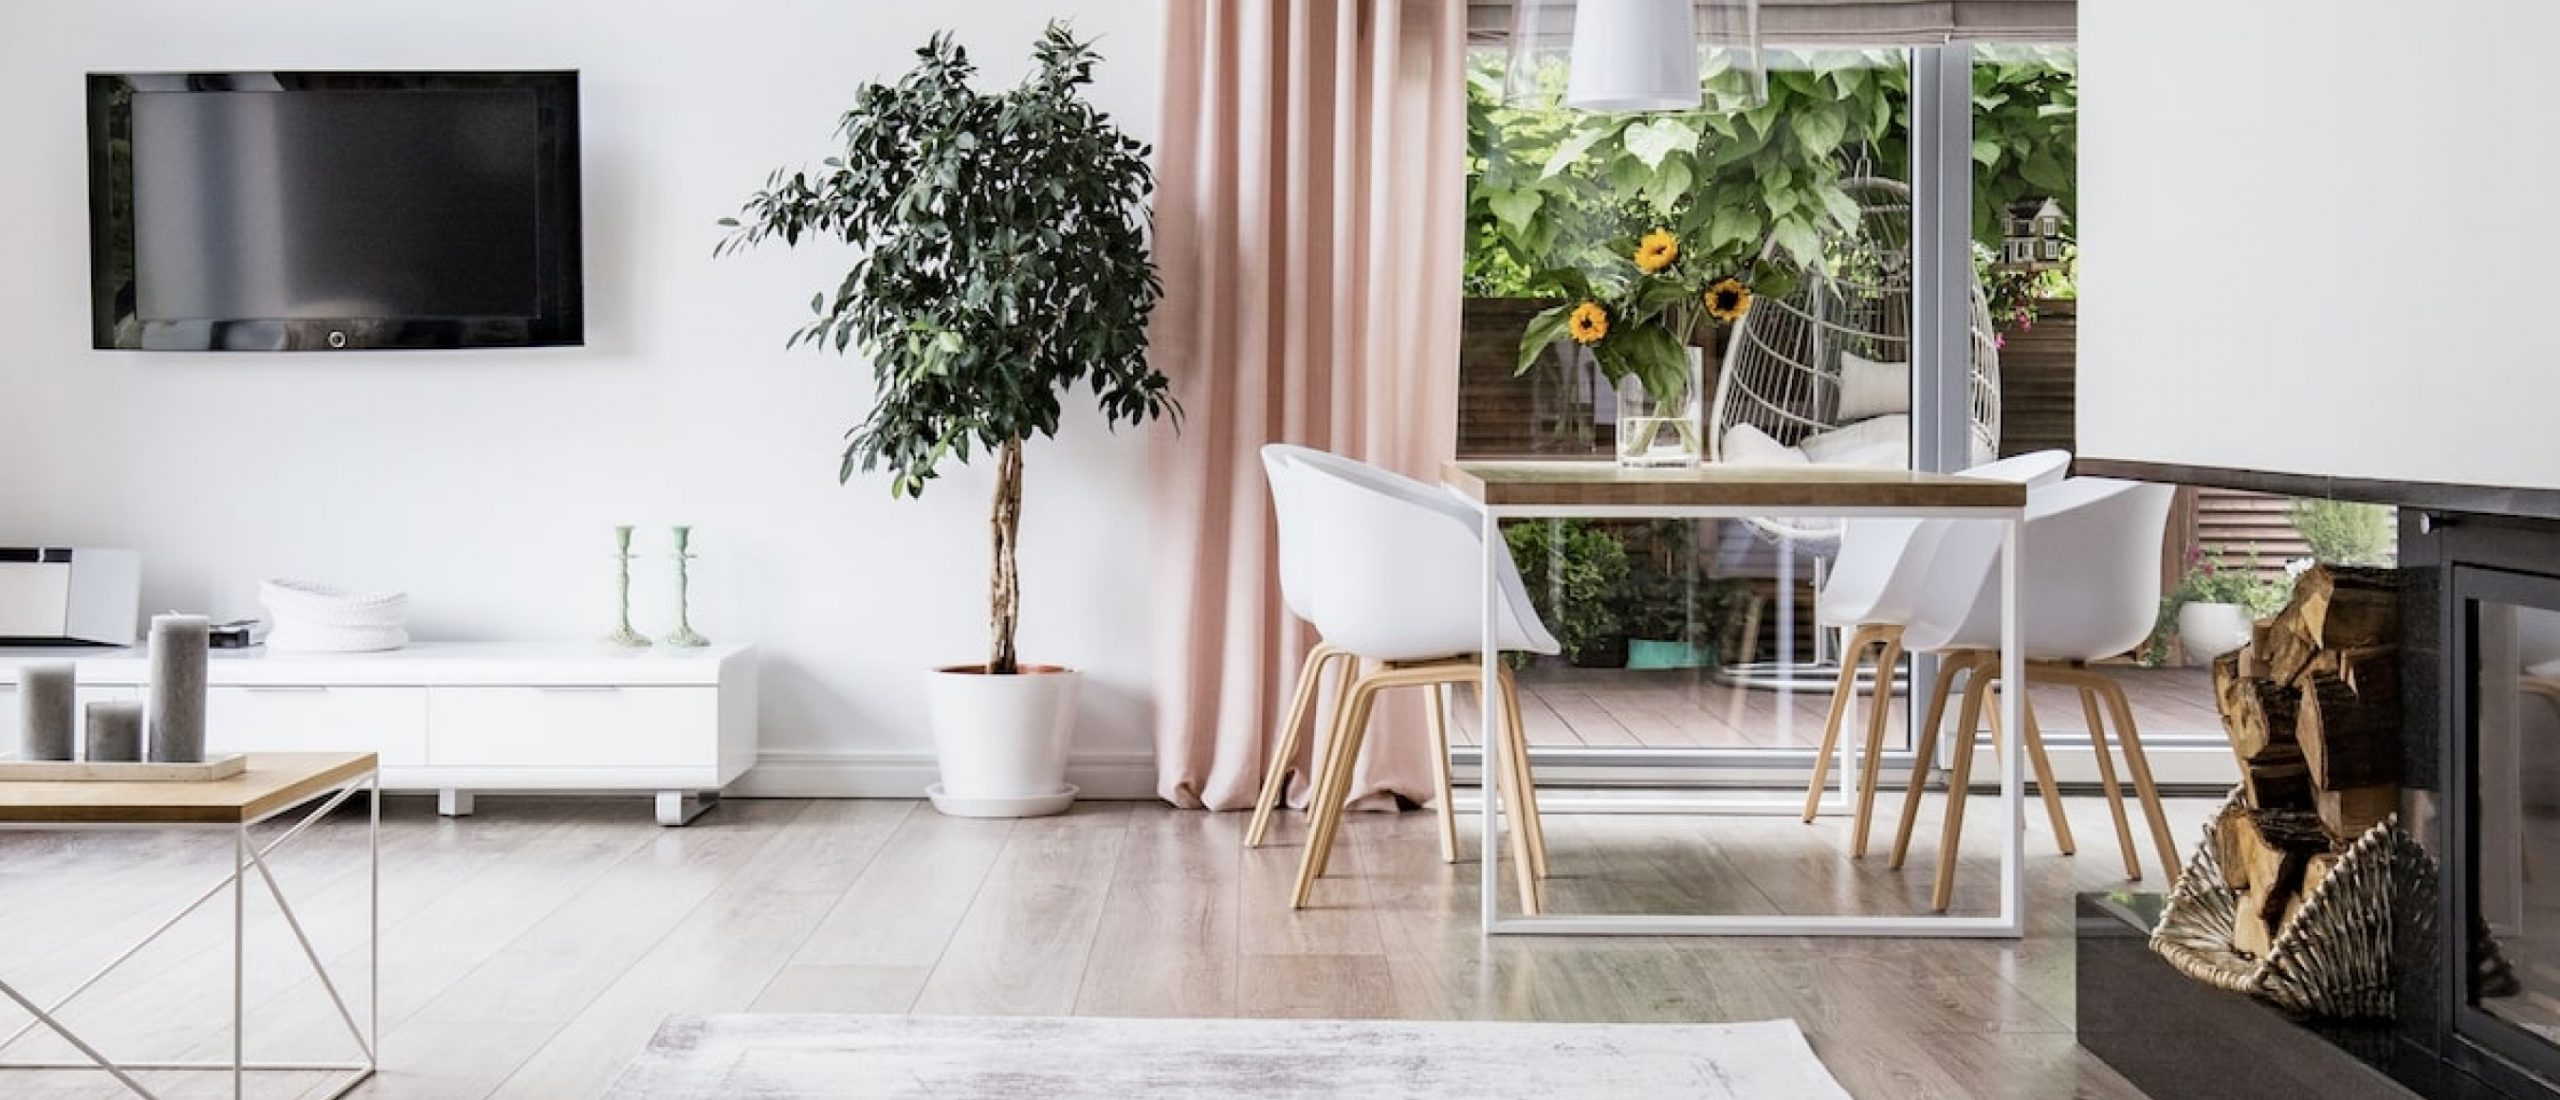 Living room with Plant, Chair and Table